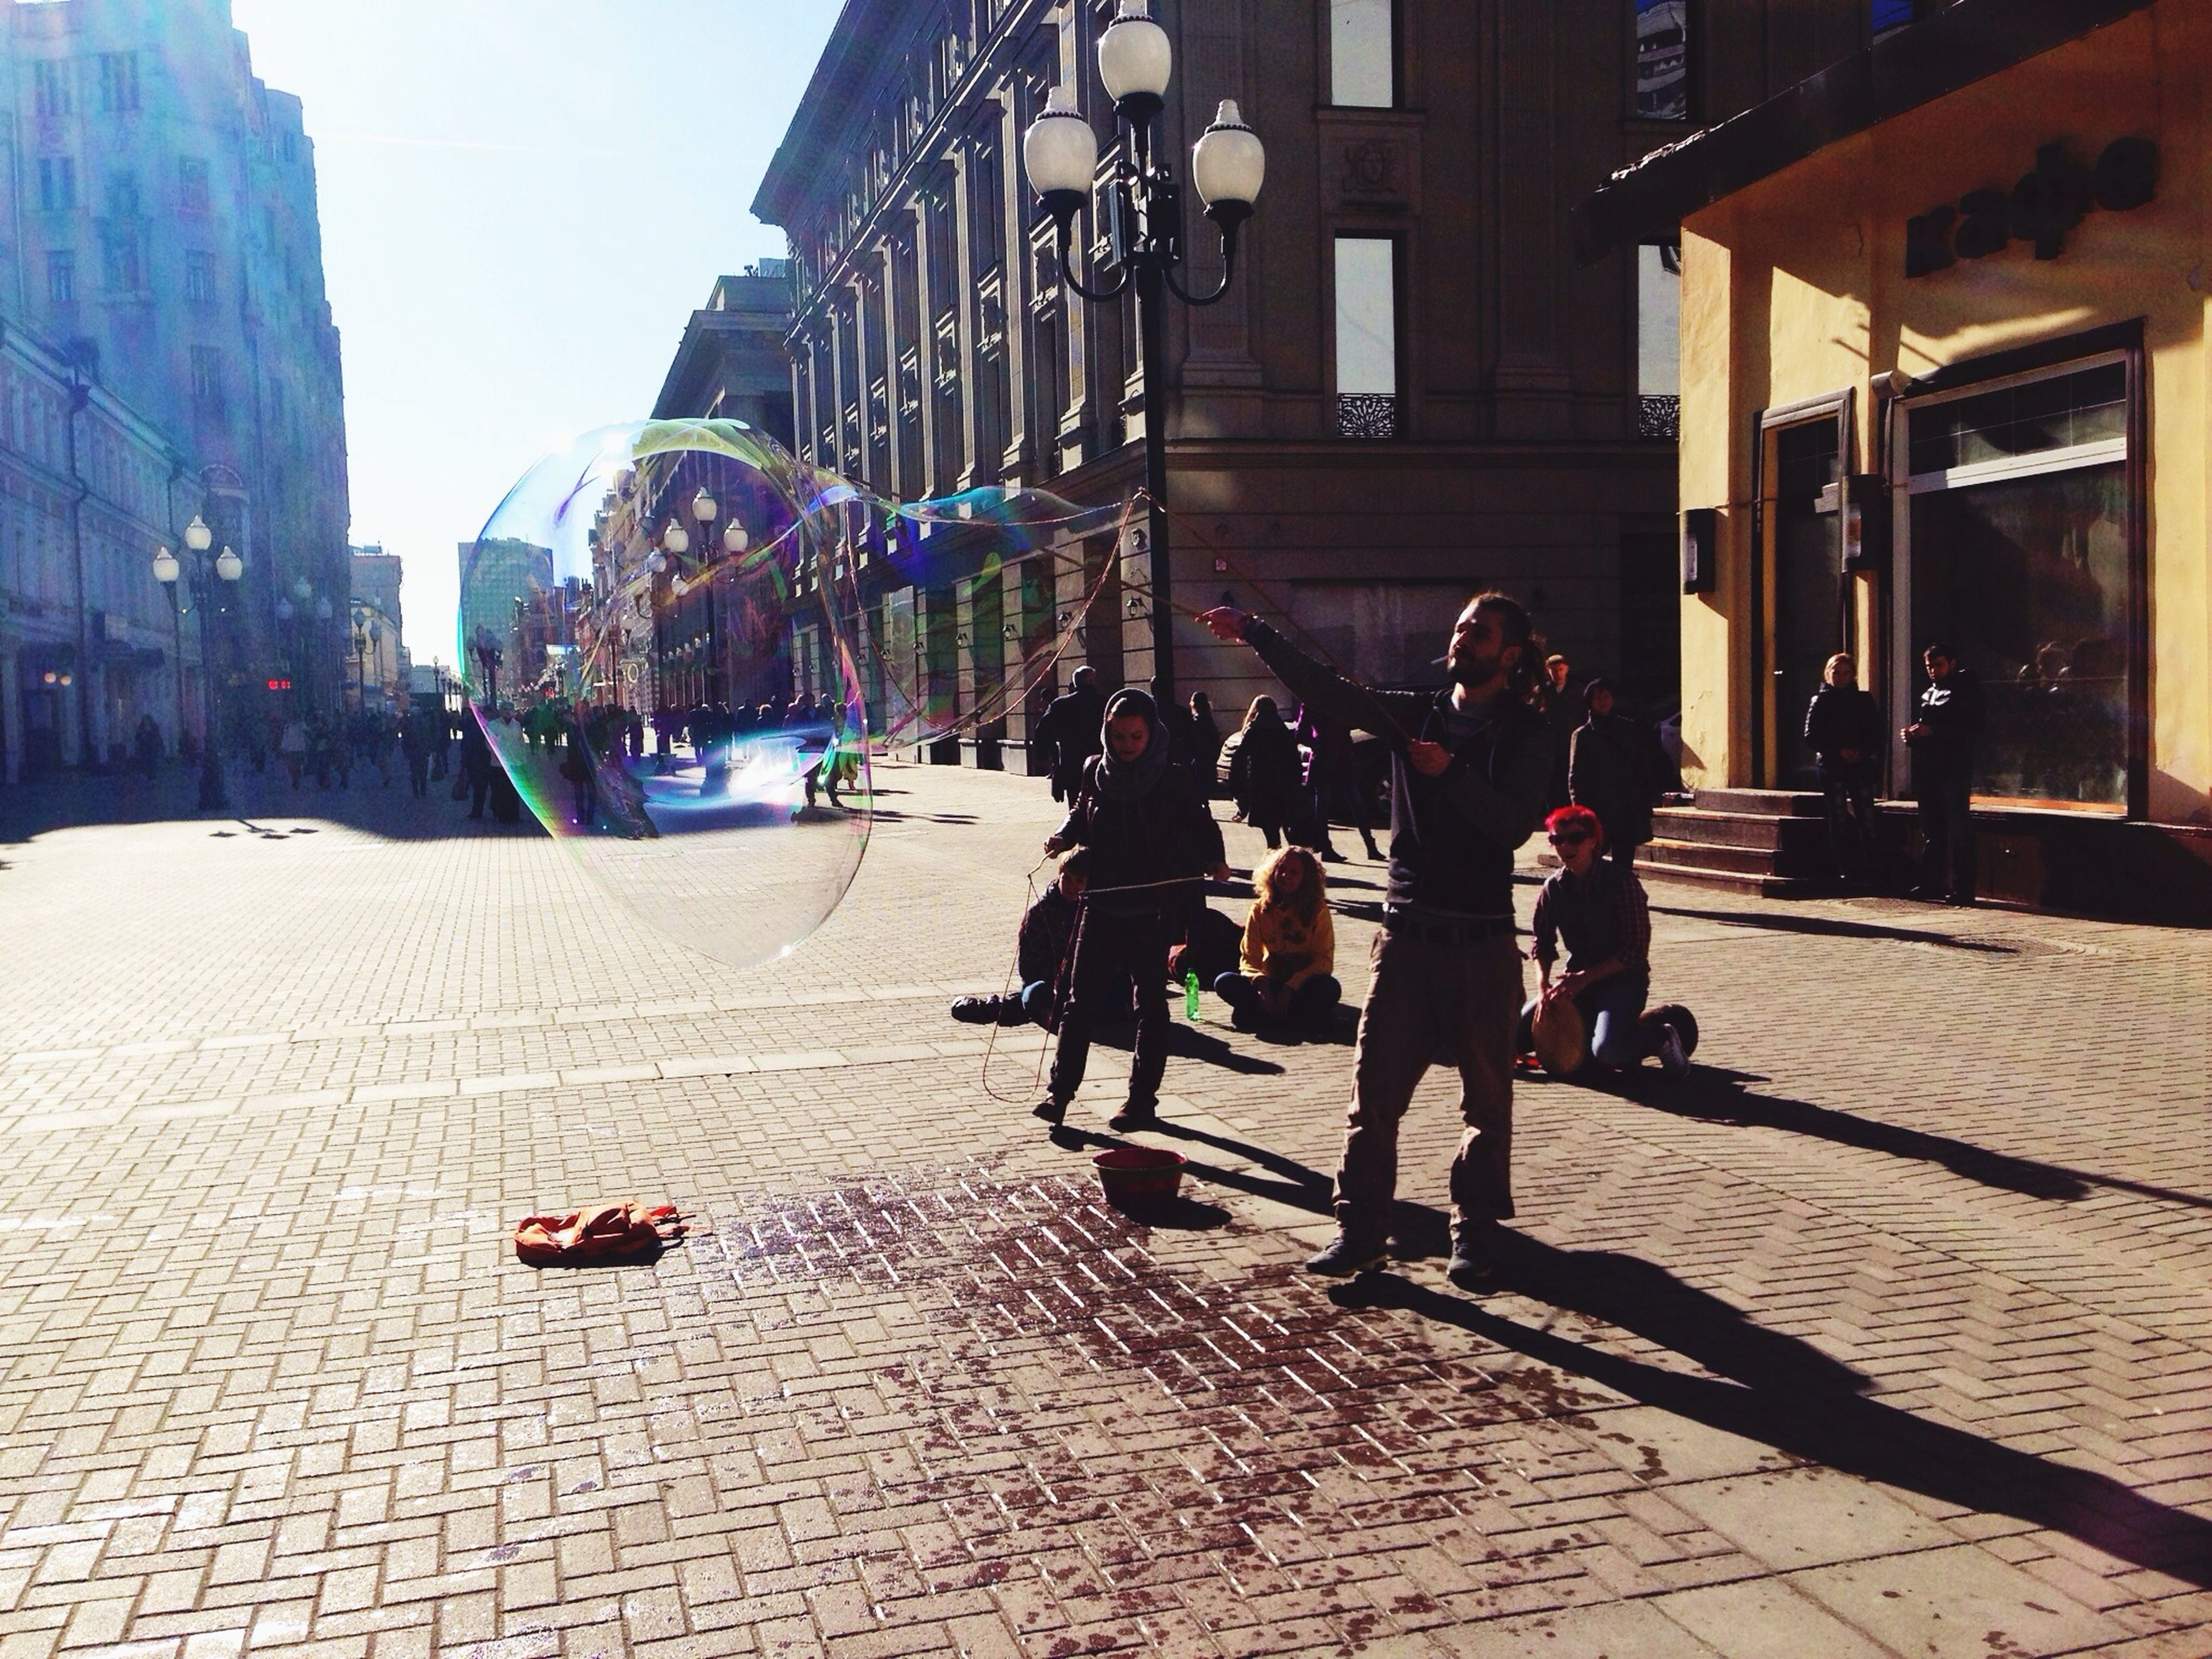 building exterior, architecture, built structure, lifestyles, street, men, leisure activity, city, shadow, full length, person, sunlight, walking, city life, sidewalk, cobblestone, outdoors, togetherness